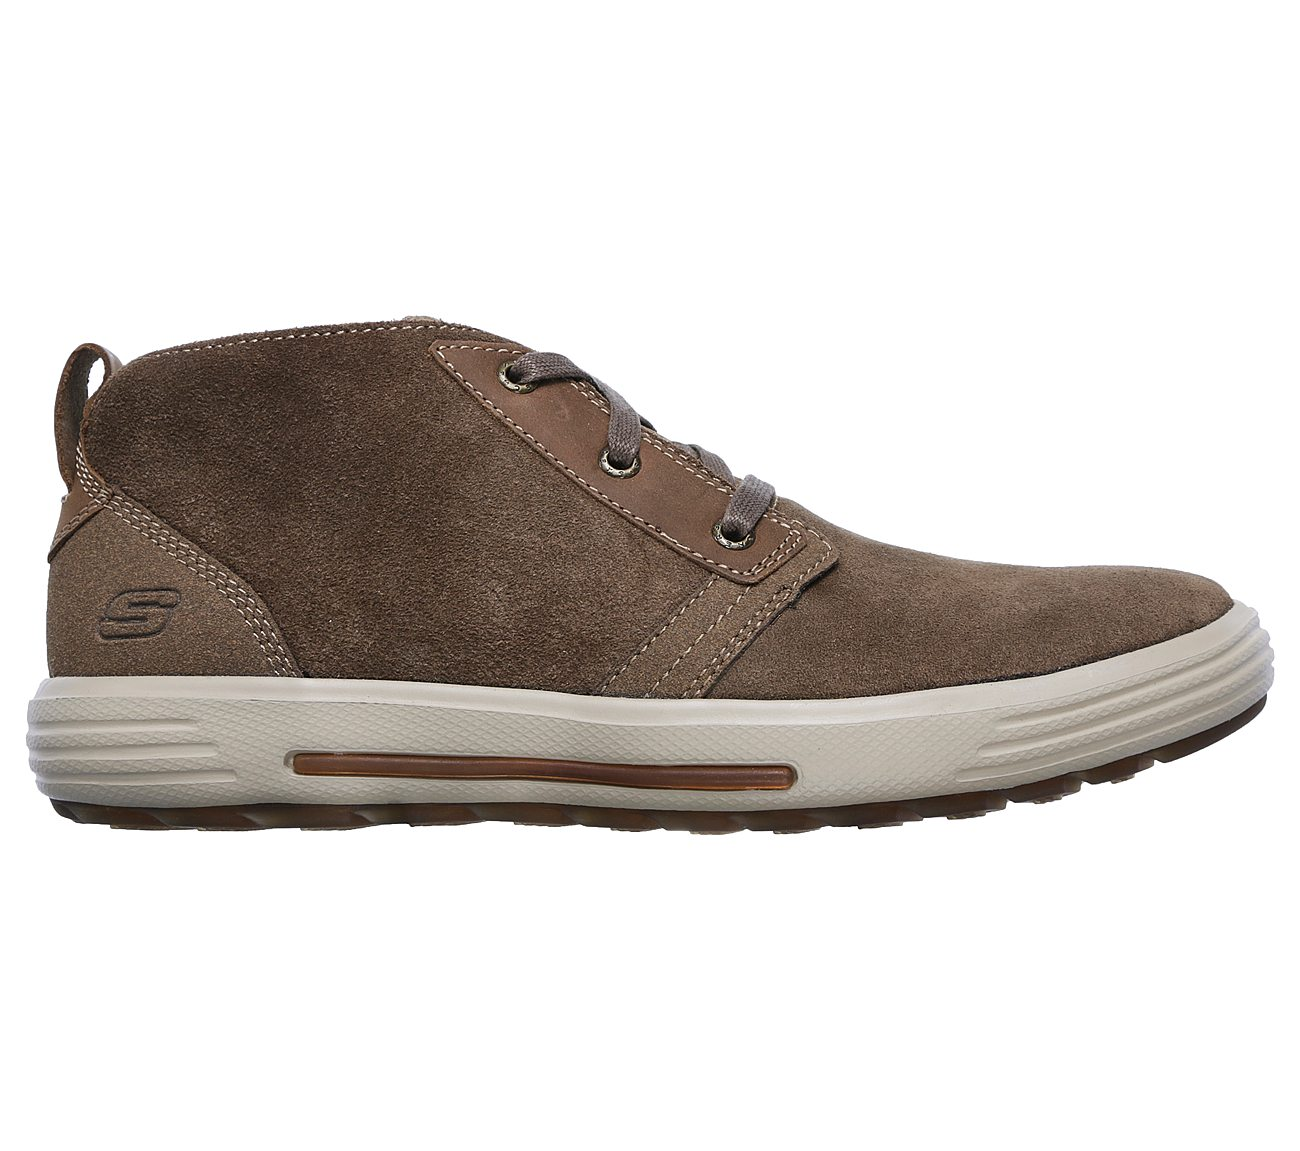 152c3699a6c8f Buy SKECHERS Porter - Malego Skech-Air Shoes only  78.00